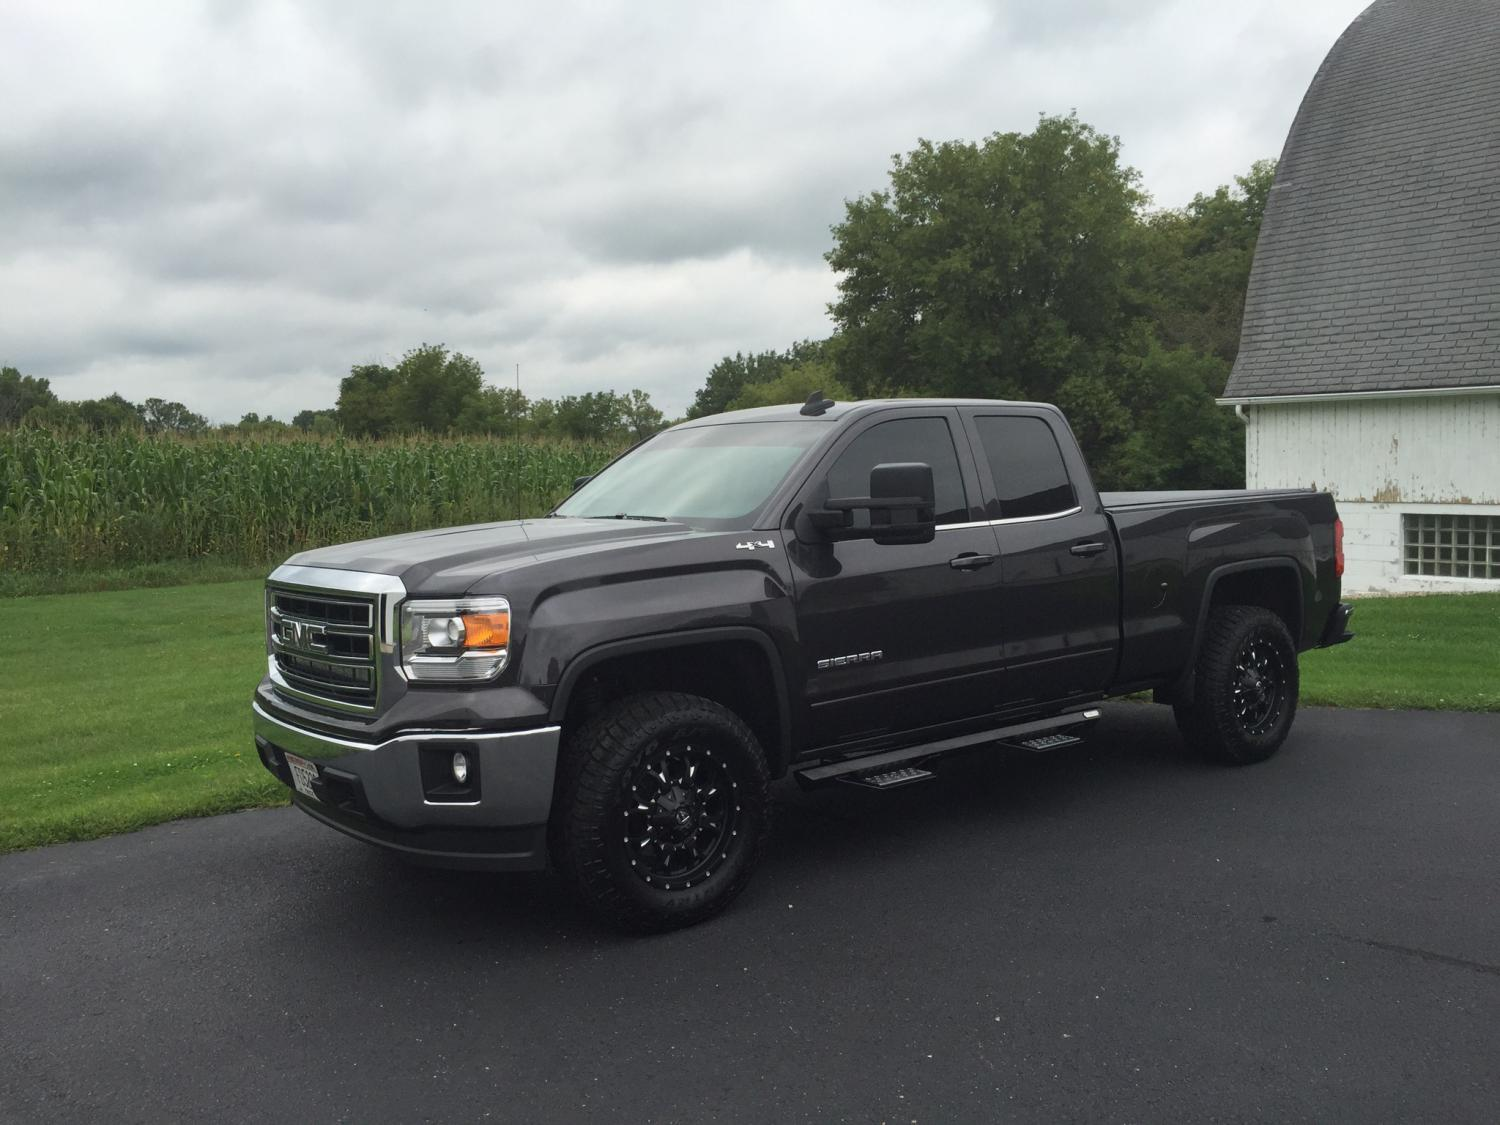 Chevy Silverado Rally Edition >> Post your pics of 1500's with Tow Mirrors - 2014 - 2018 Chevy Silverado & GMC Sierra - GM-Trucks.com